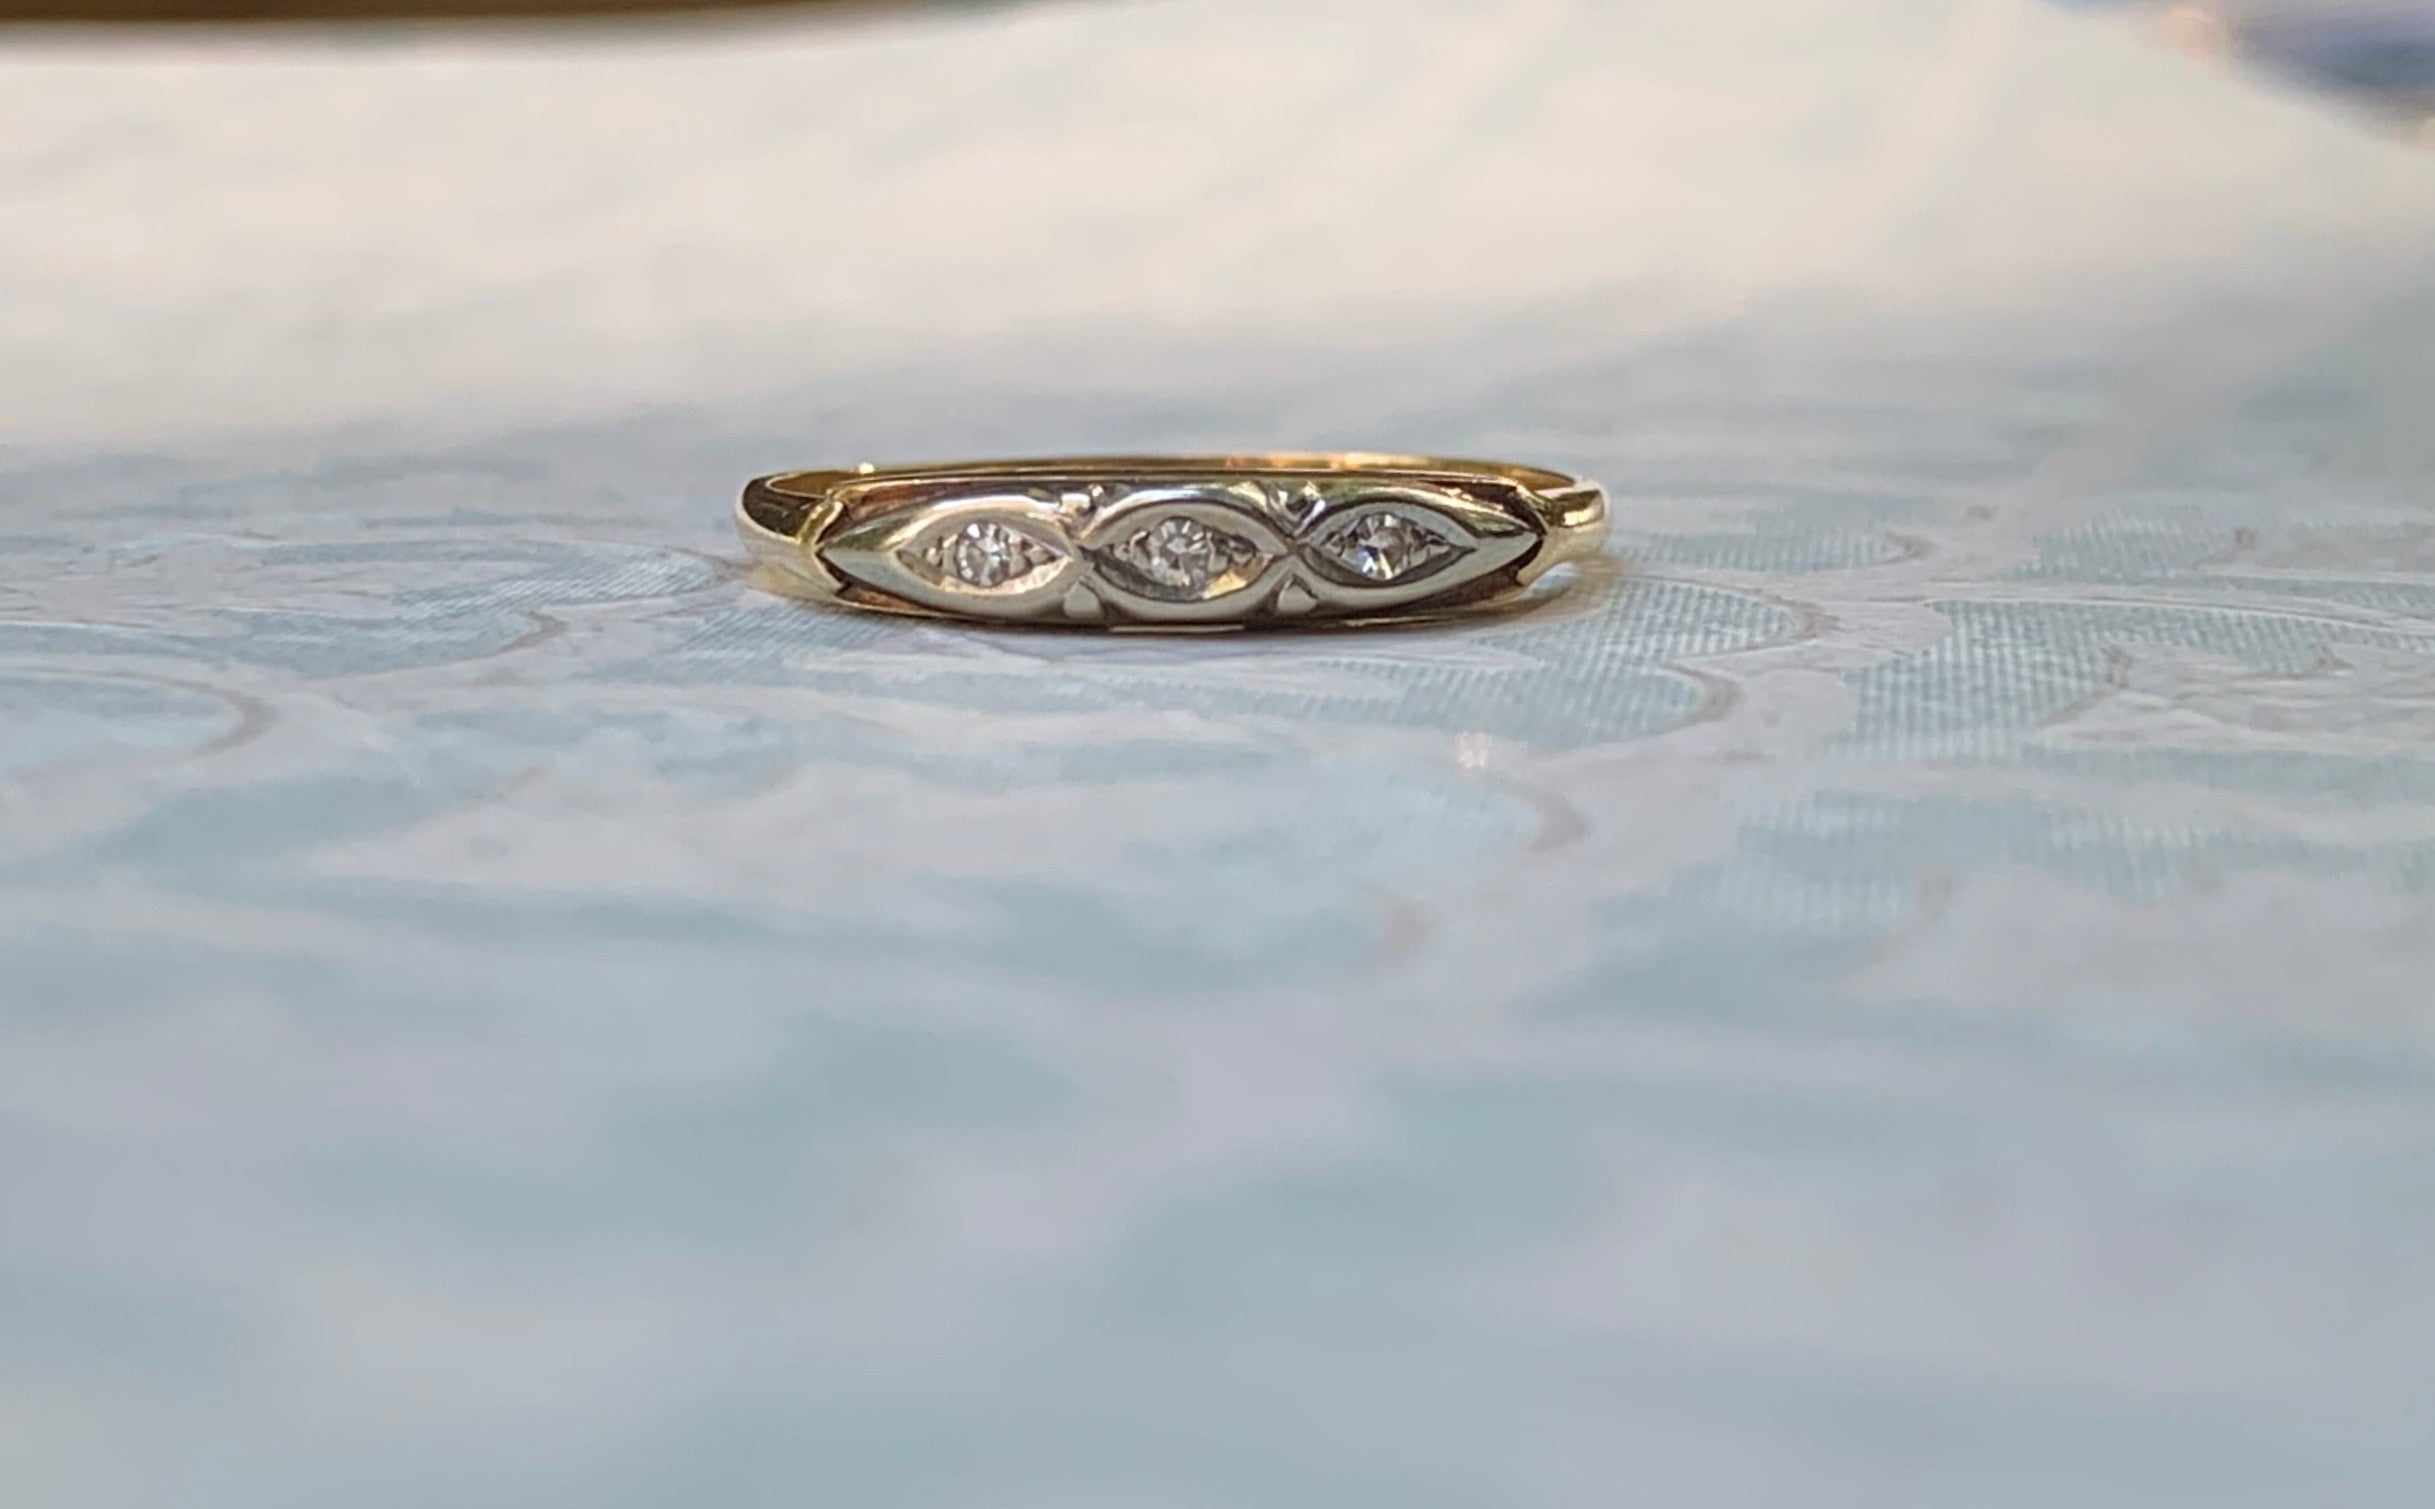 Vintage scalloped band